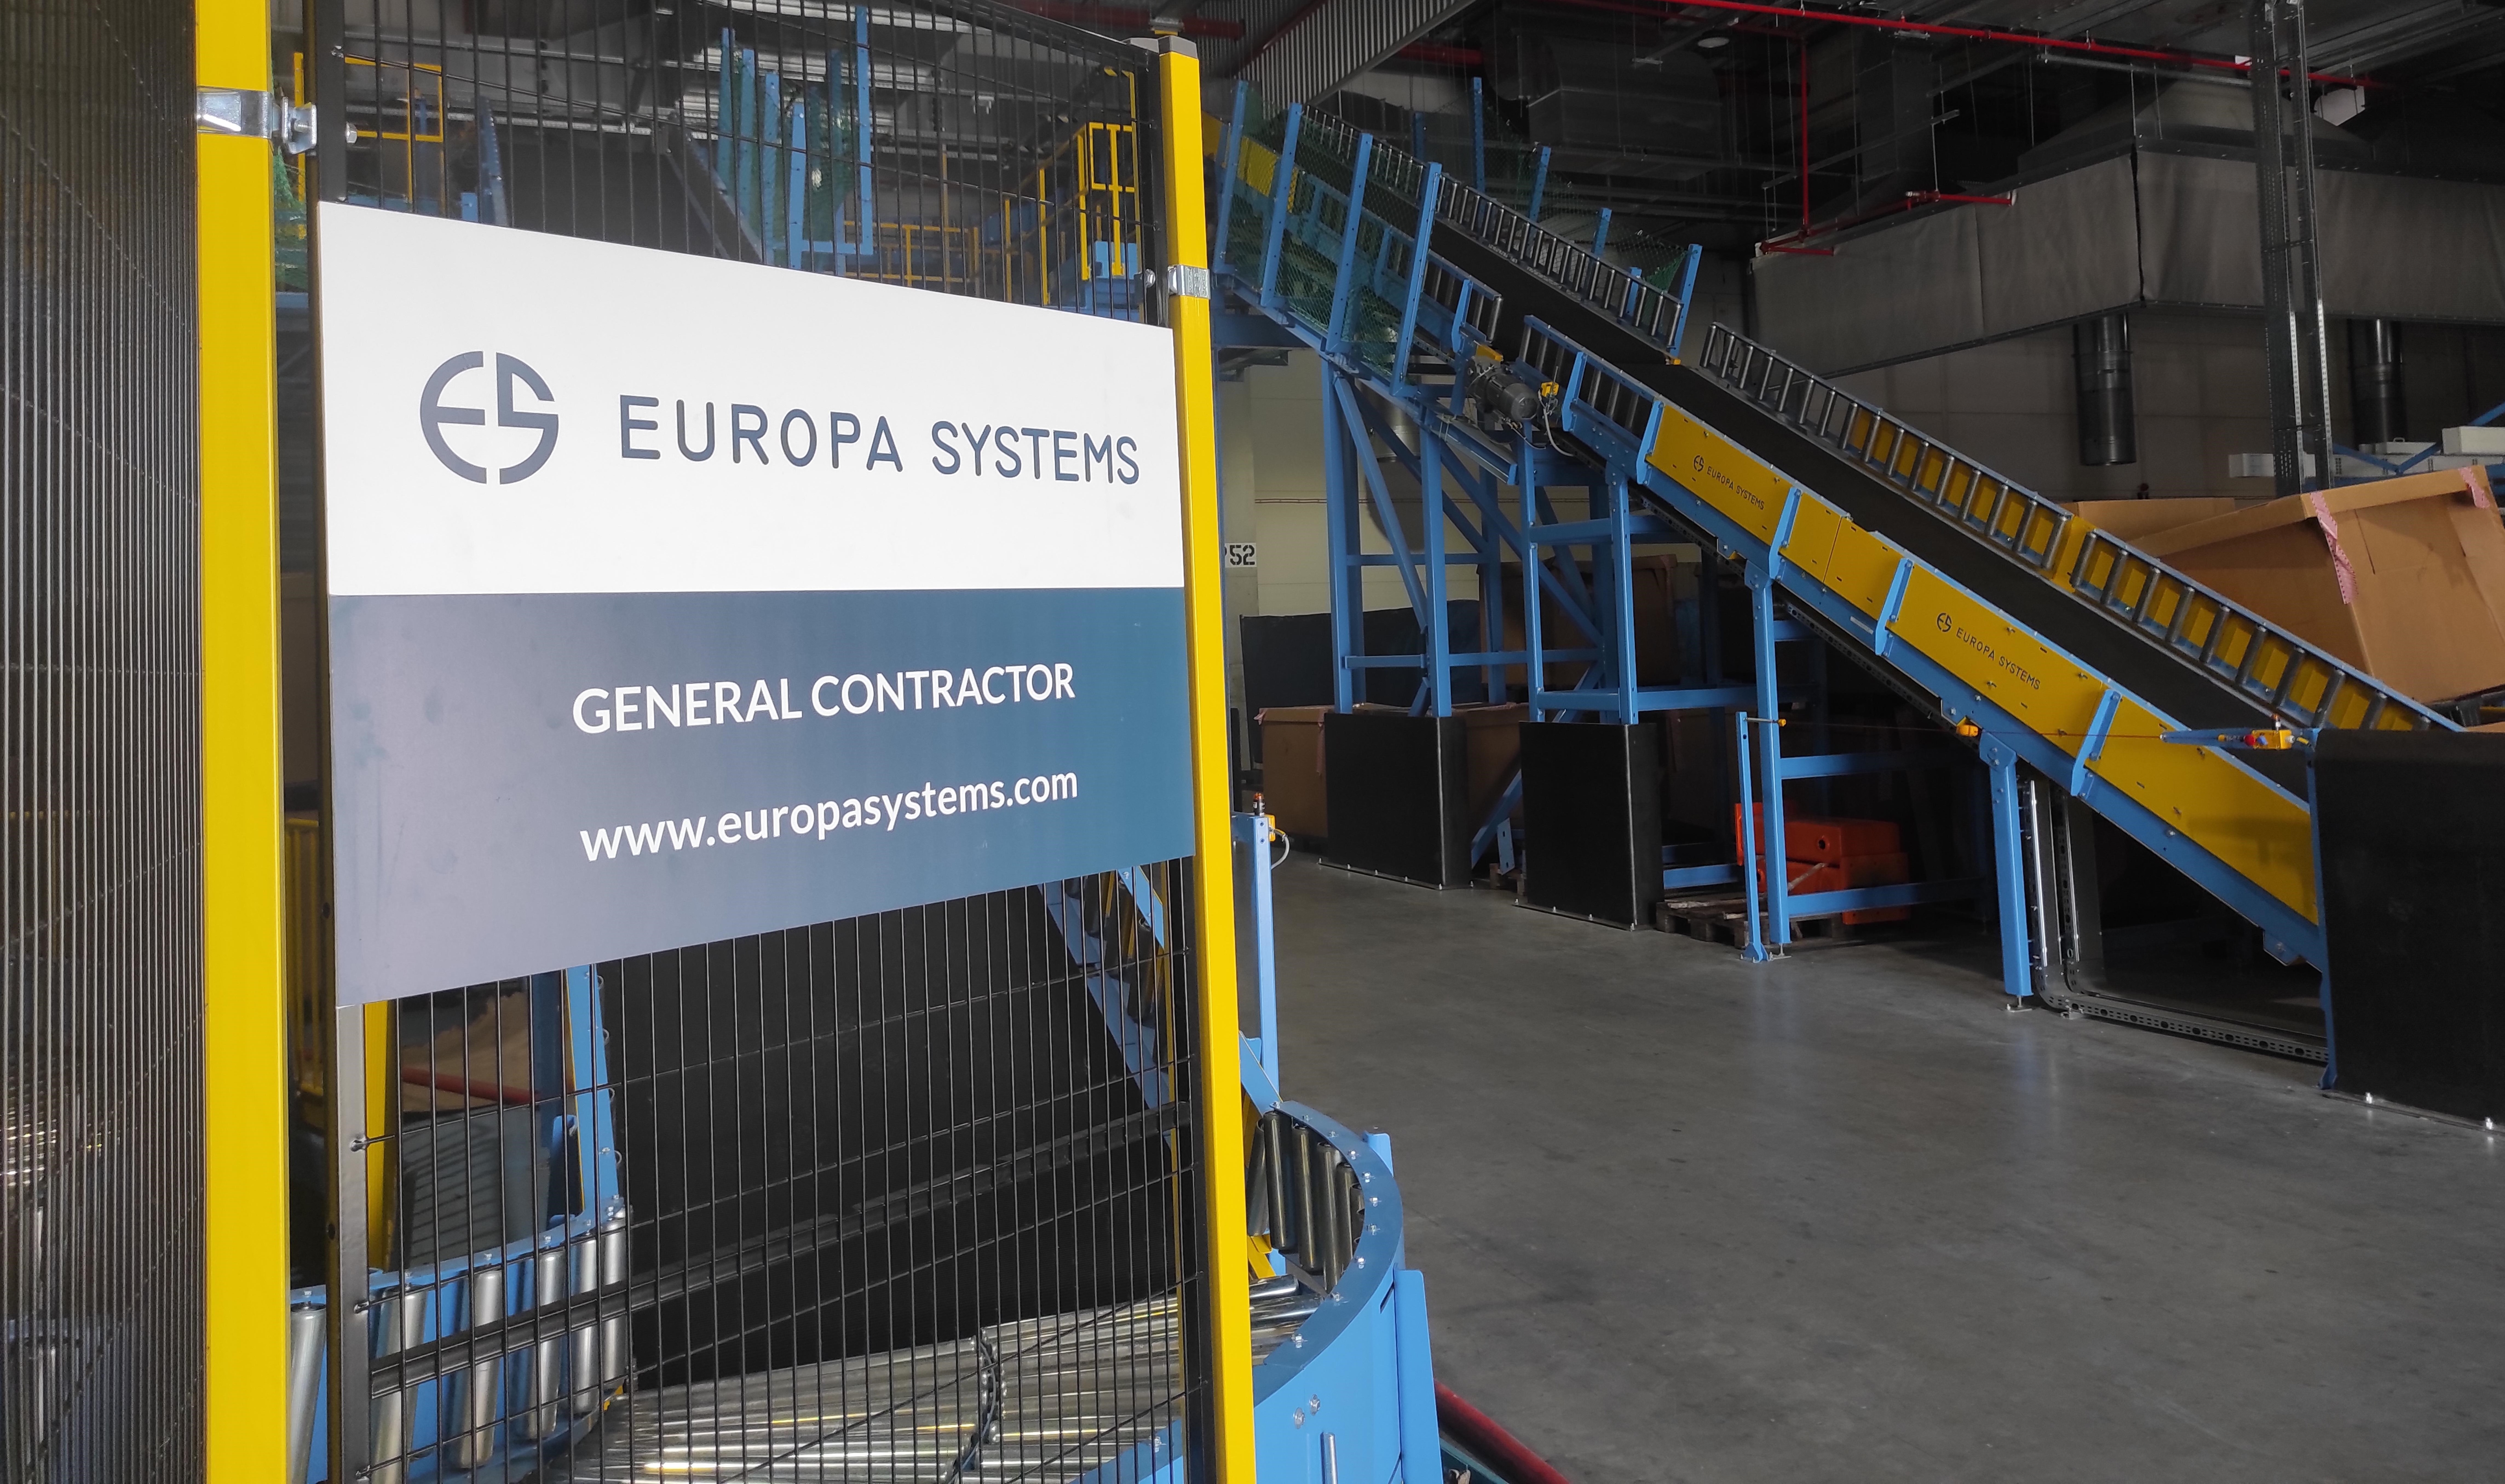 Implementation of Europa Systems for the largest player in the tire industry